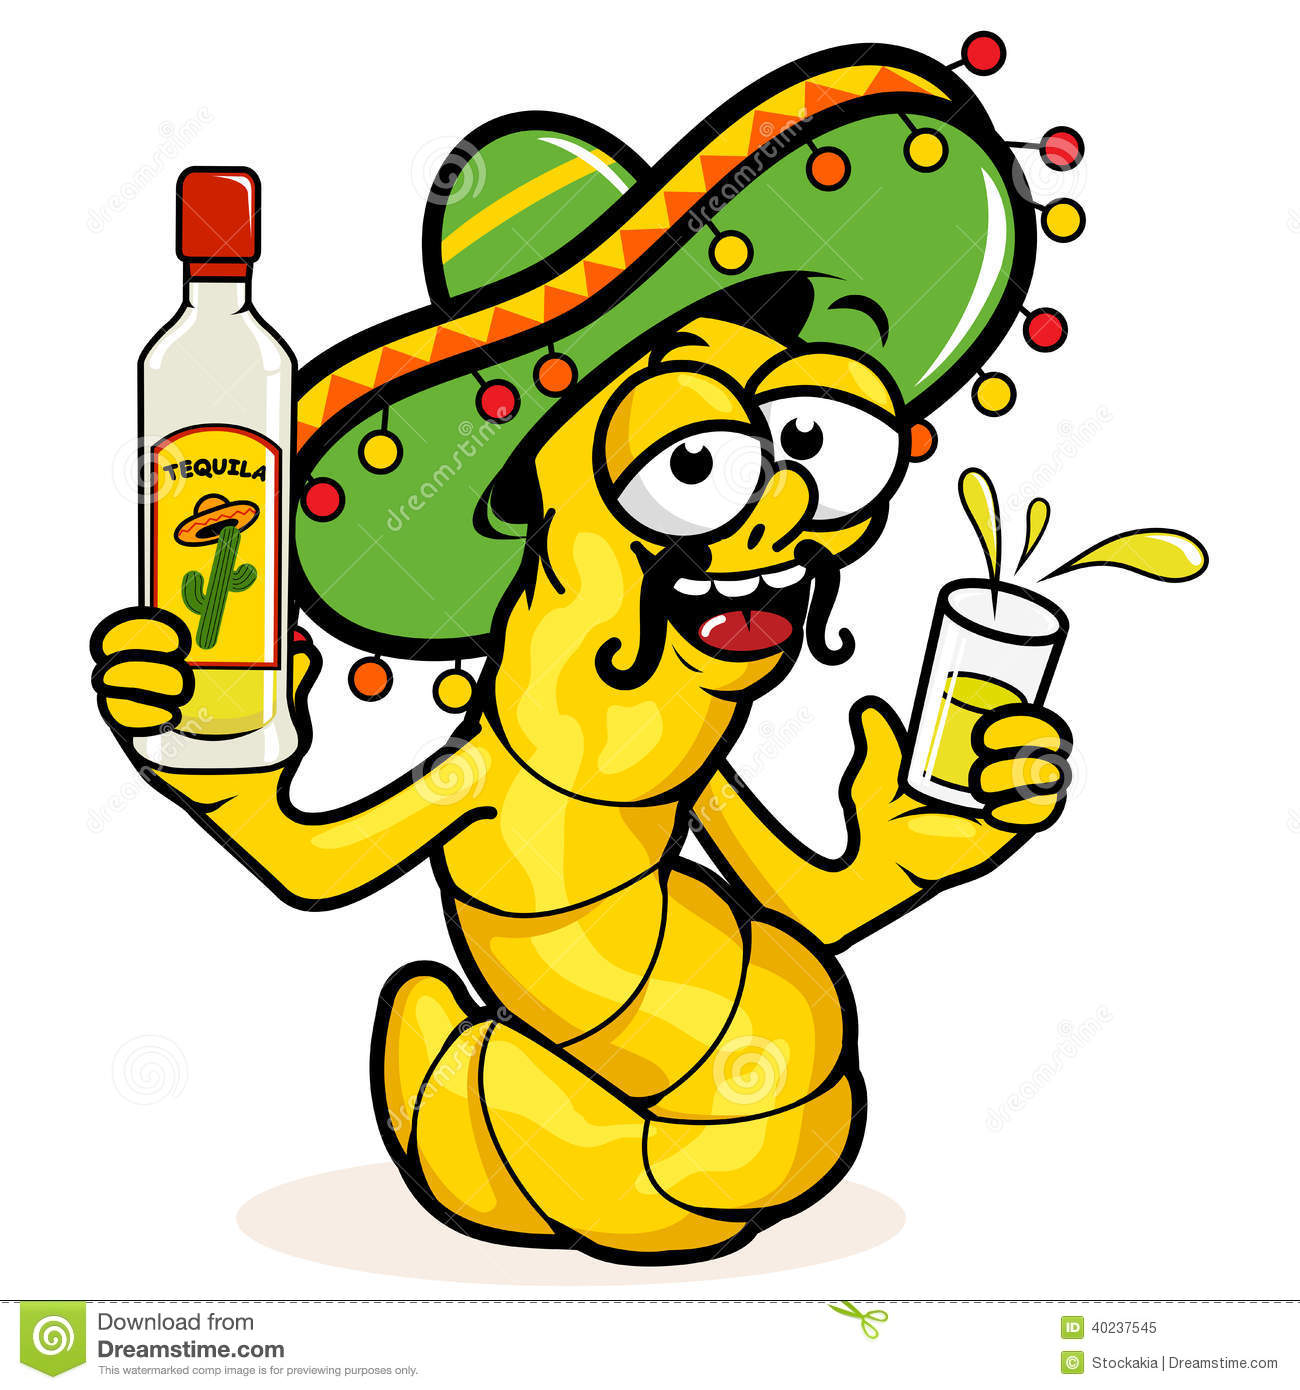 cartoon drunk tequila worm holding a bottle of tequila.